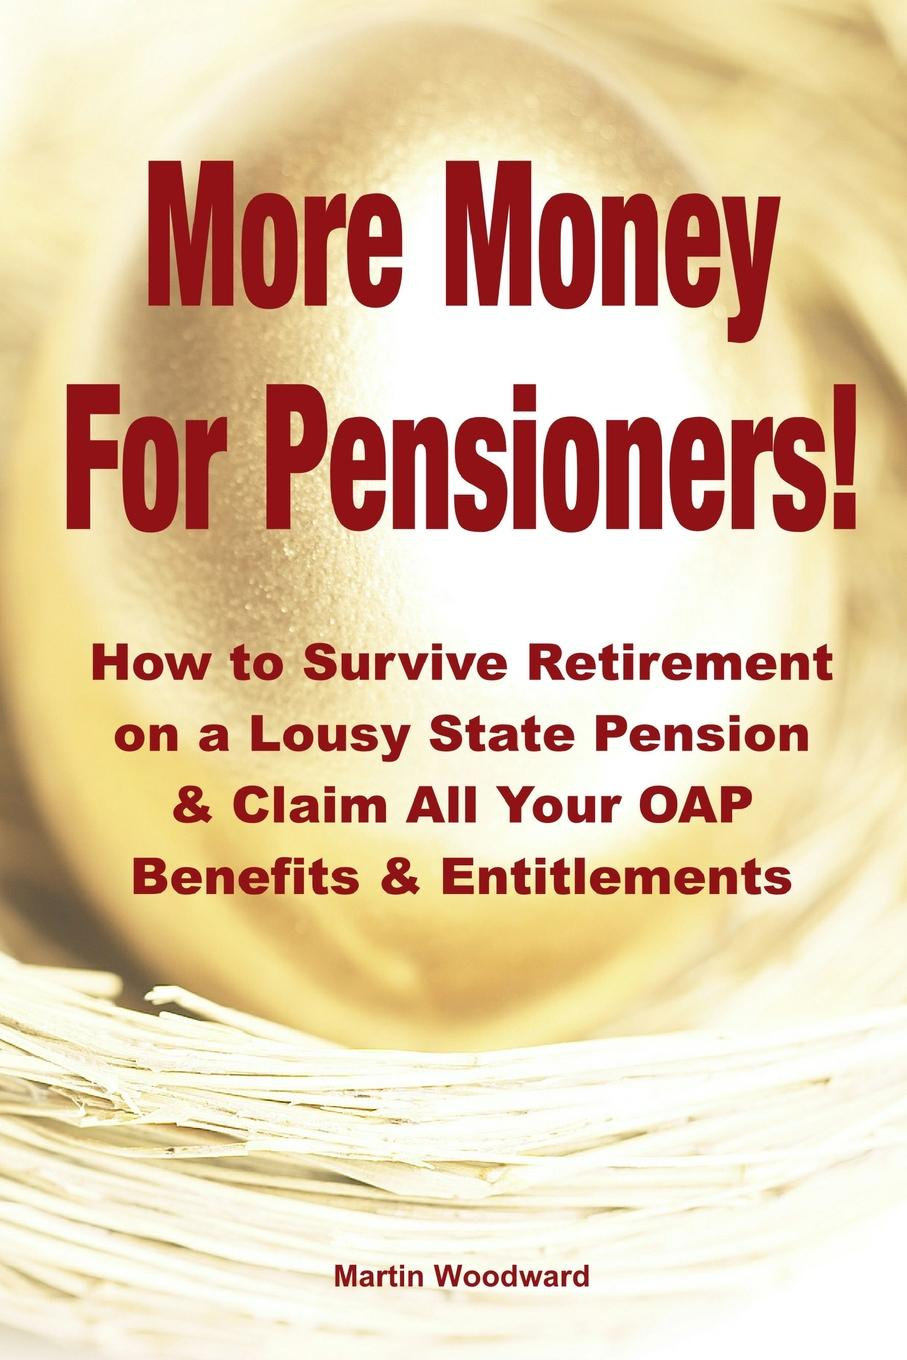 Martin Woodward More Money For Pensioners.. How to Survive Retirement on a Lousy State Pension and Claim All Your OAP Benefits . Entitlements ashley ormond how to give your kids $1 million each and it won t cost you a cent